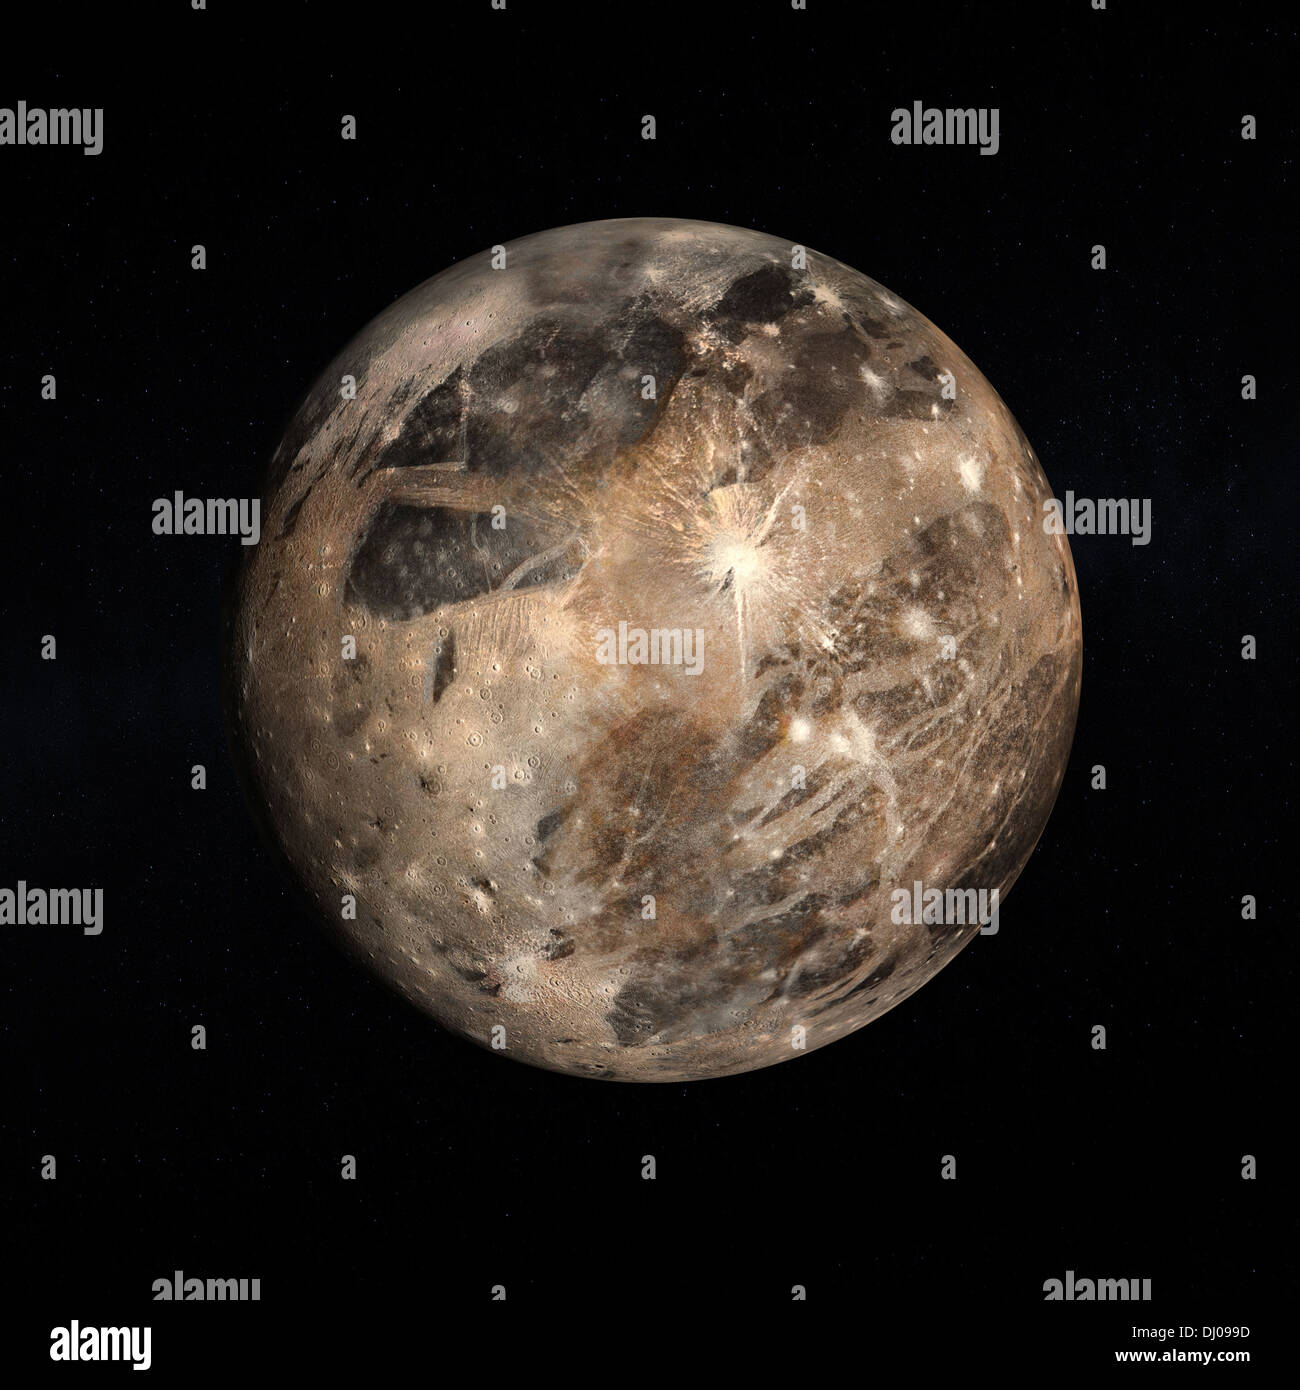 A rendered Image of the Jupitermoon Ganymede on a starry background. - Stock Image